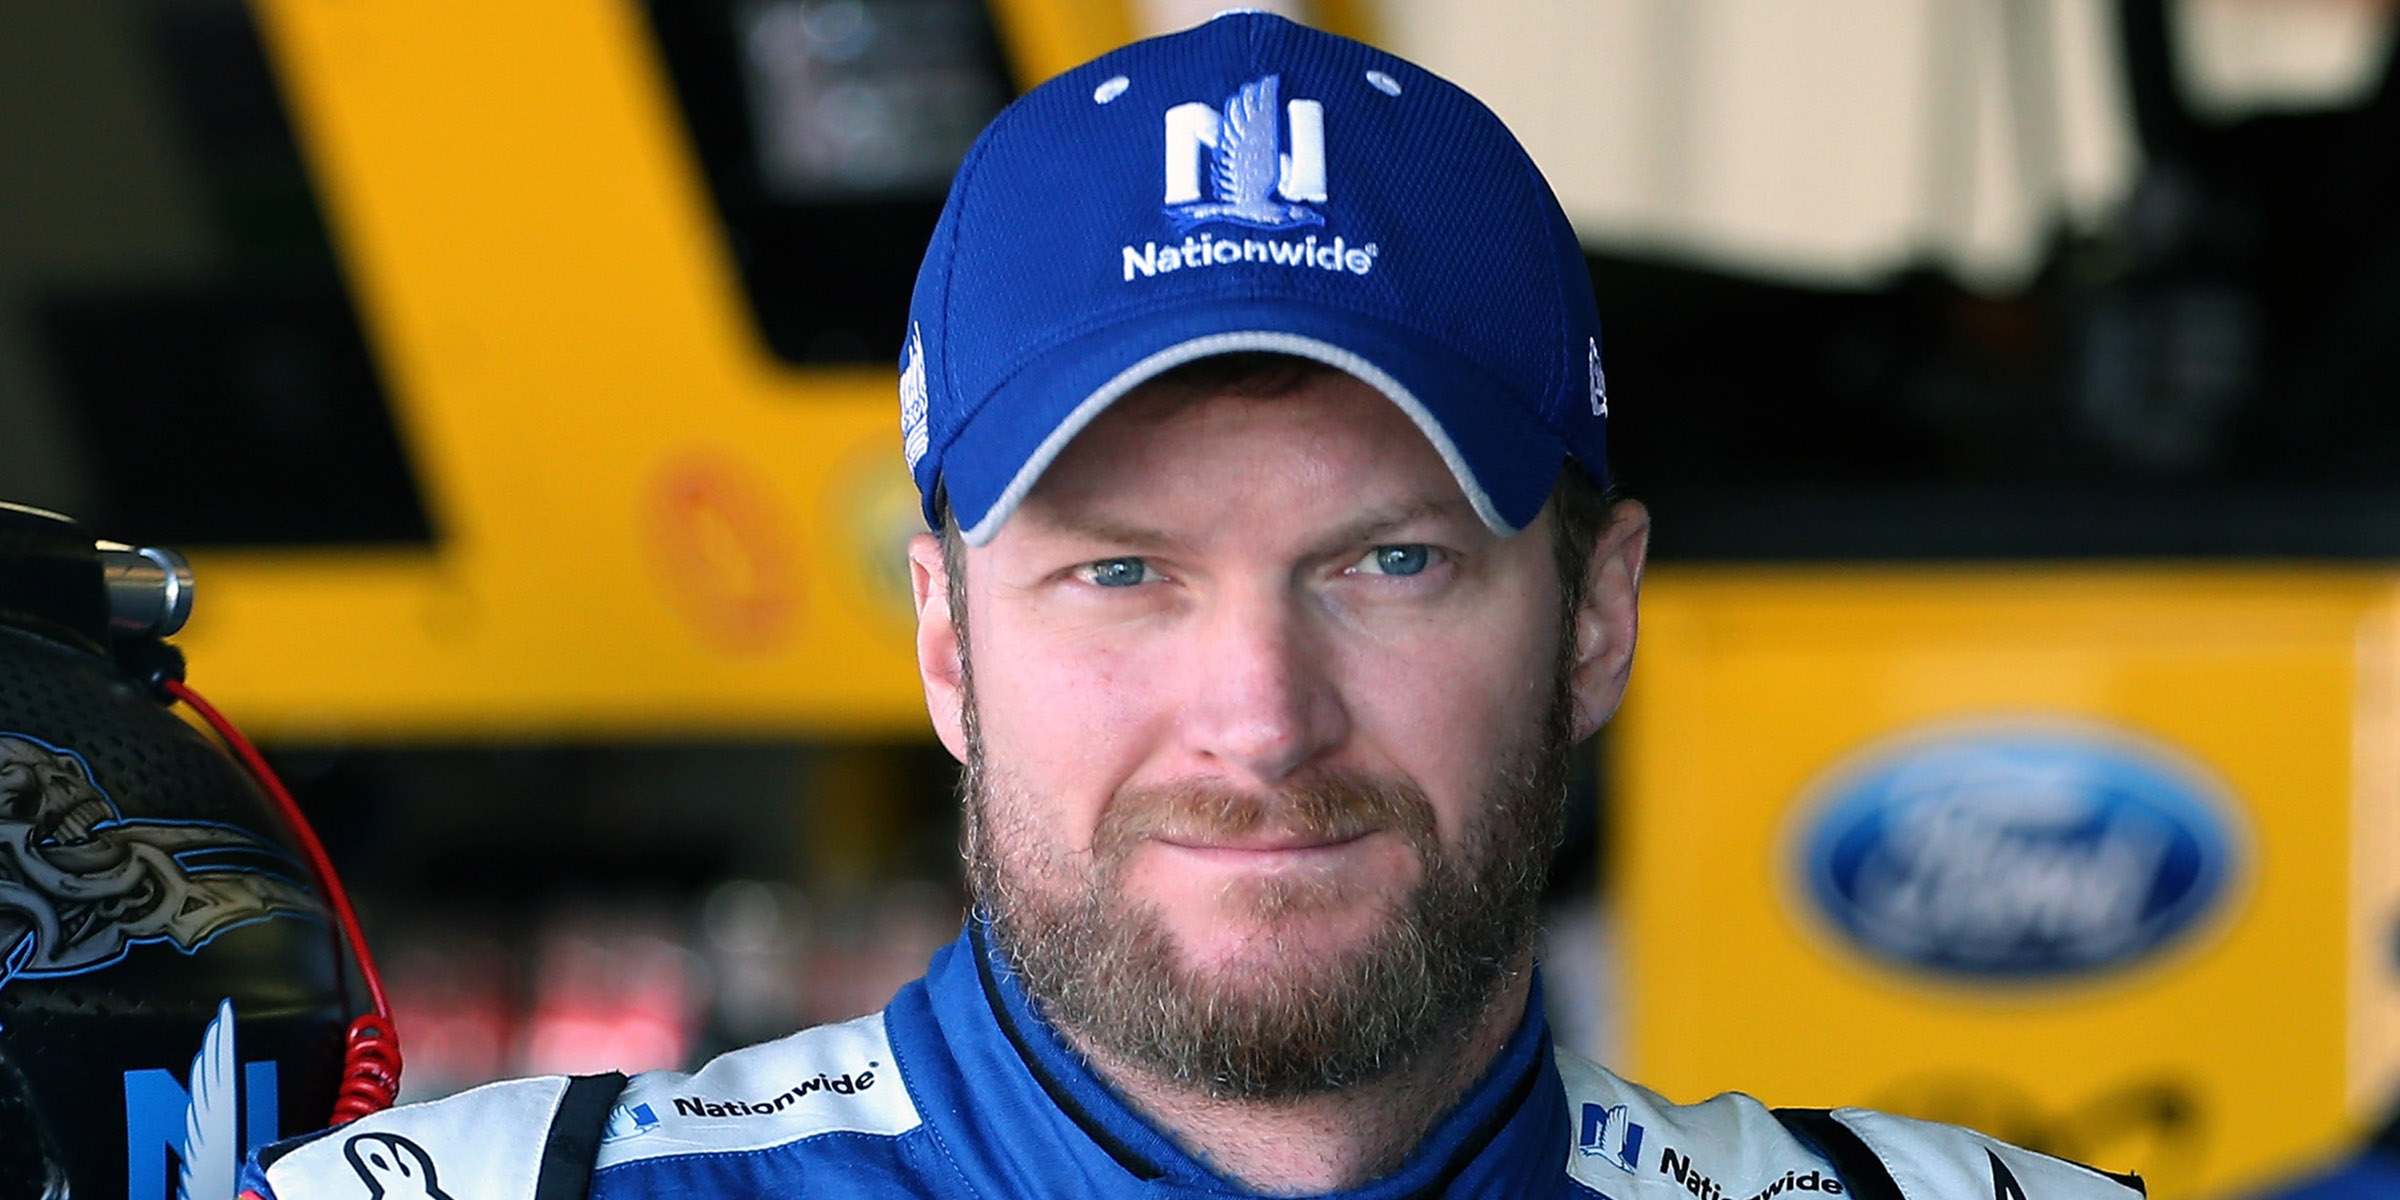 New details emerge in Dale Earnhardt Jr.'s plane crash